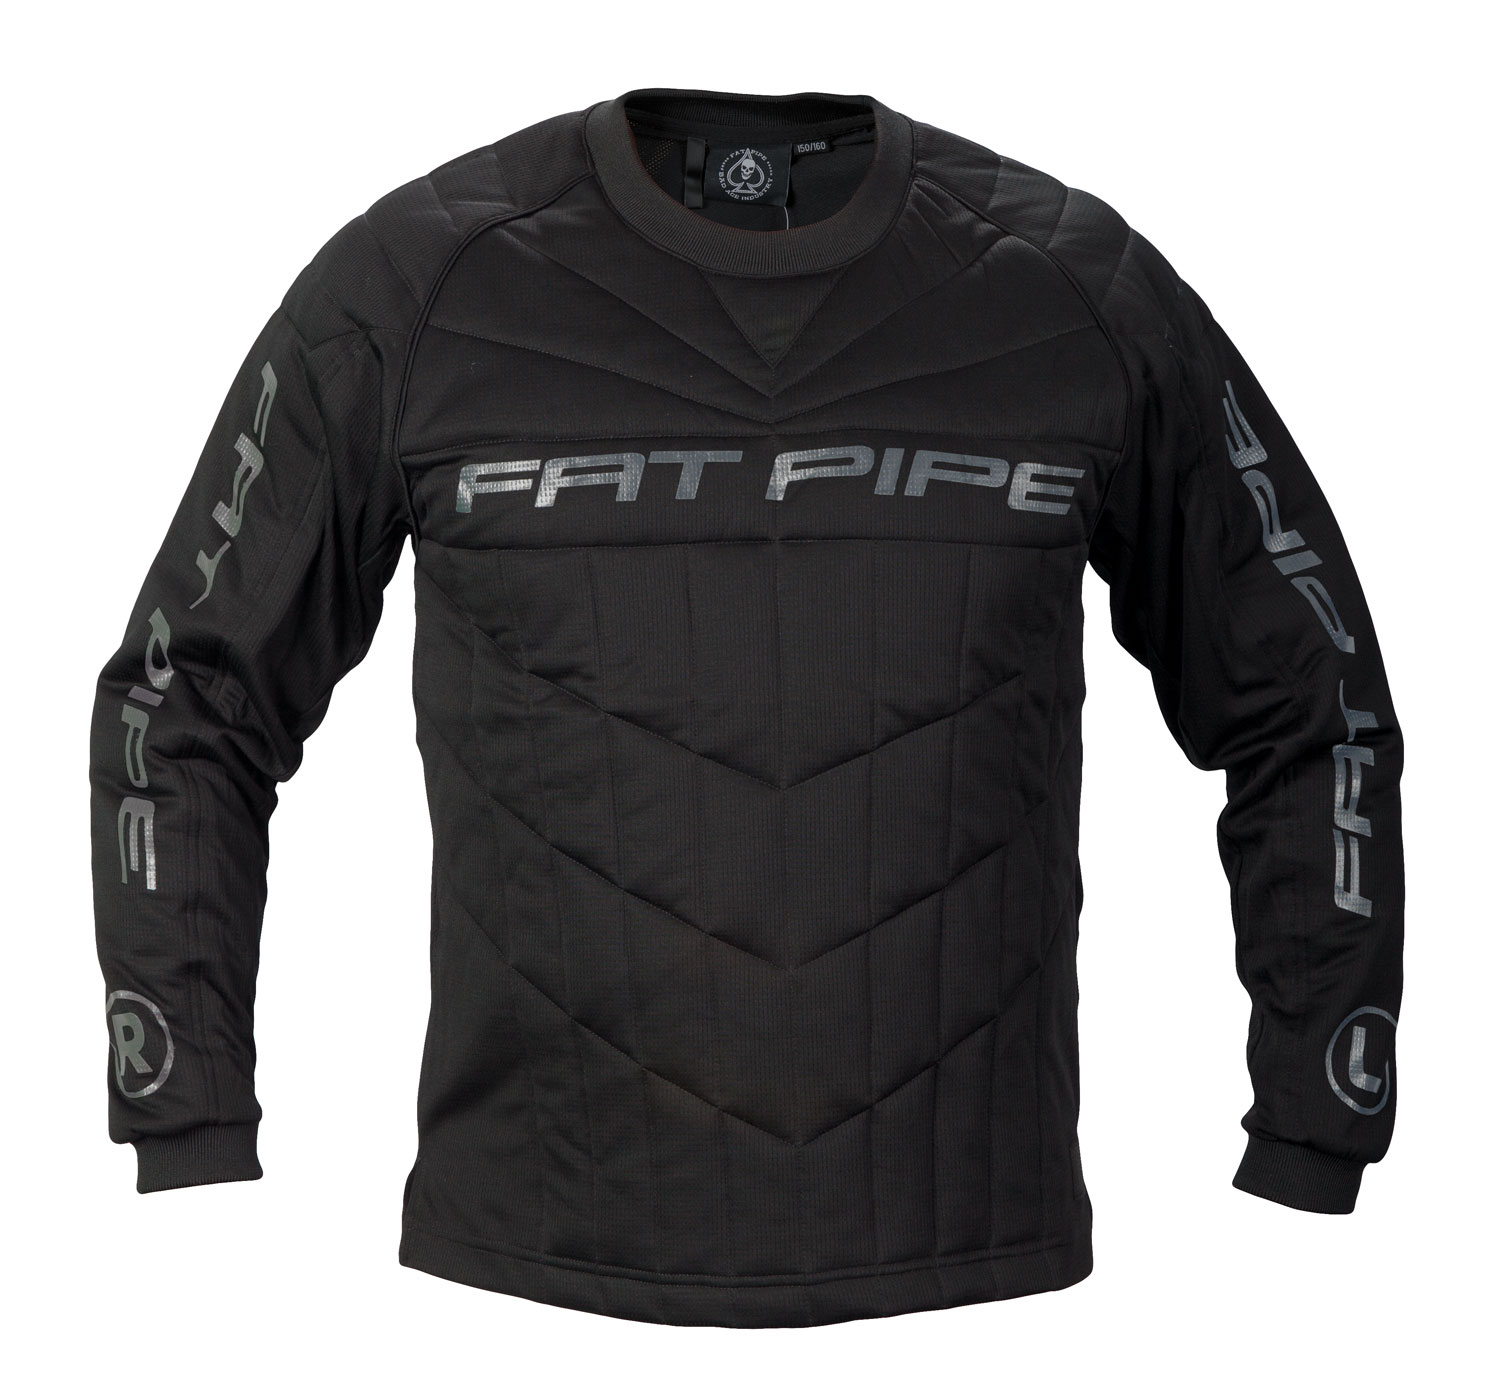 Fatpipe GK Protective Shirt for Junior